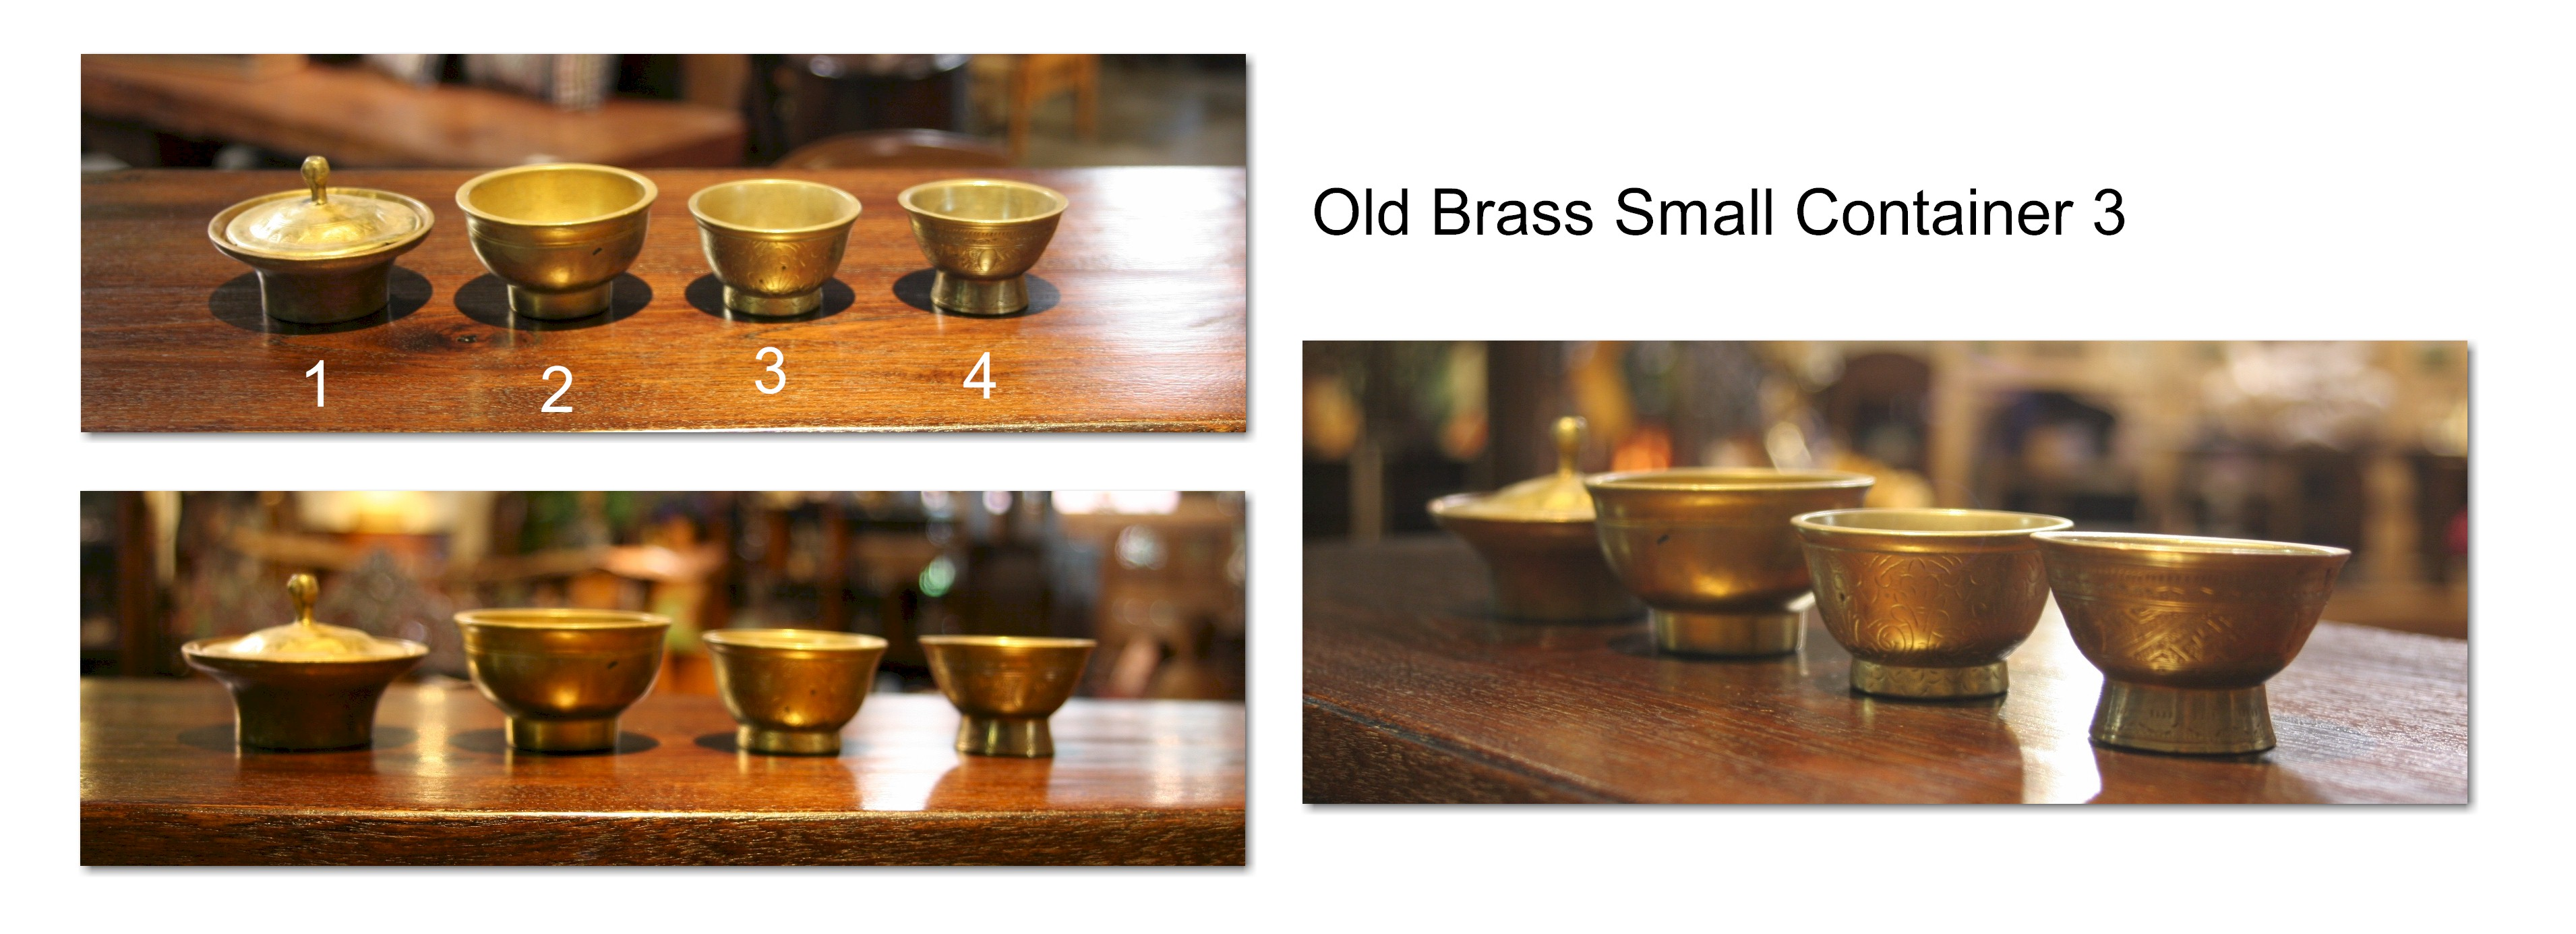 Old Brass Small Container 3